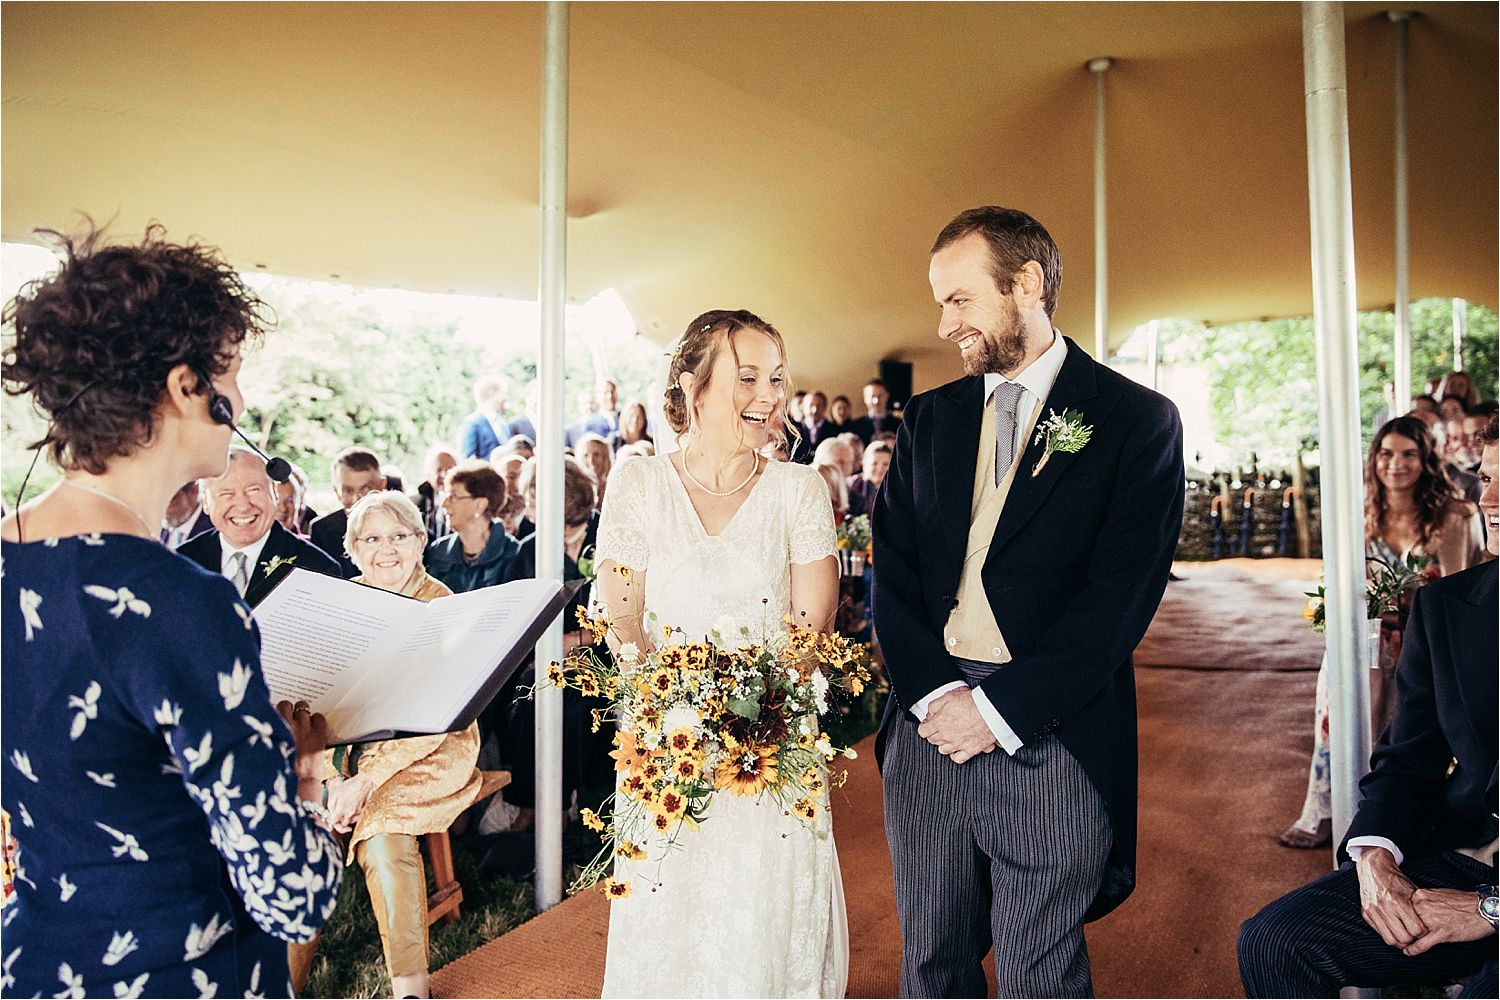 Bride and groom during tipi ceremony. Wedding dress by Elizabeth Avey, Vintage Bridal Wear and flowers by Fletcher and Foley